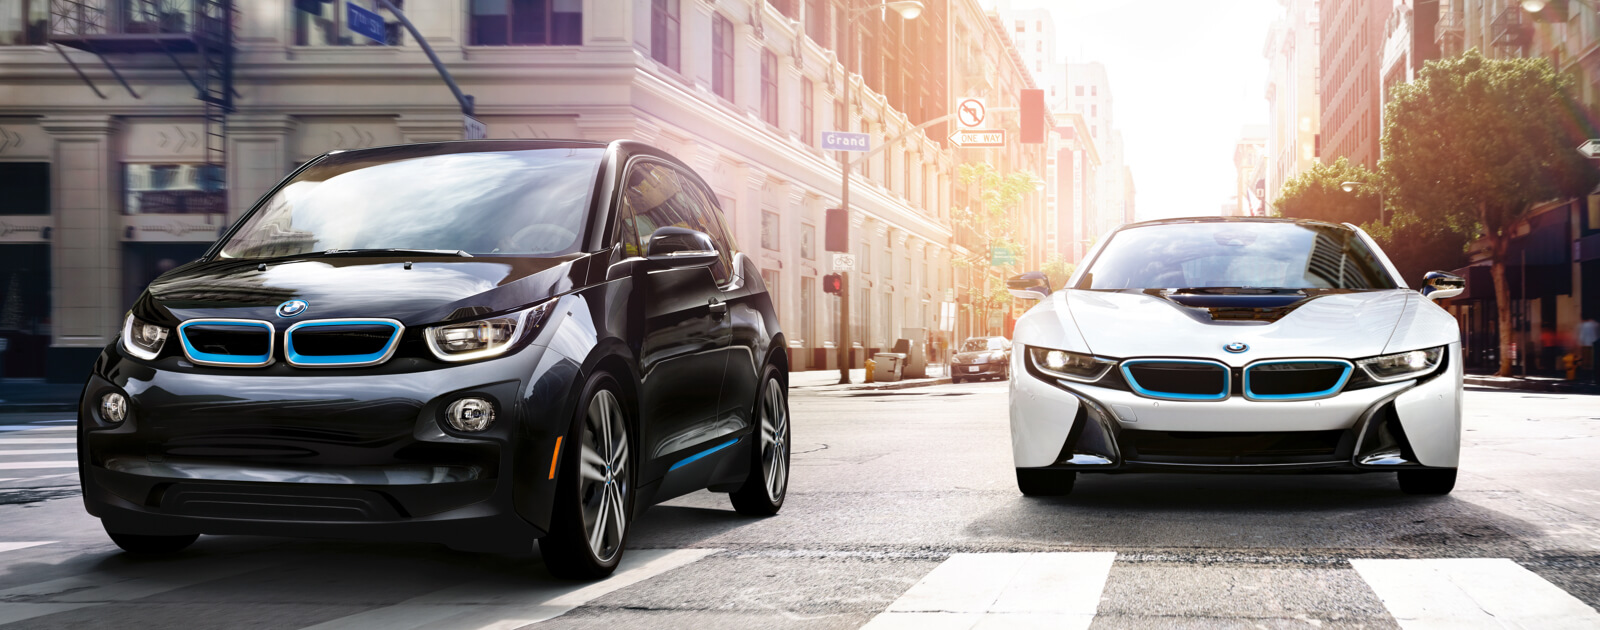 Bmw Get Ready To Compete With Tesla In The Electric Car Market